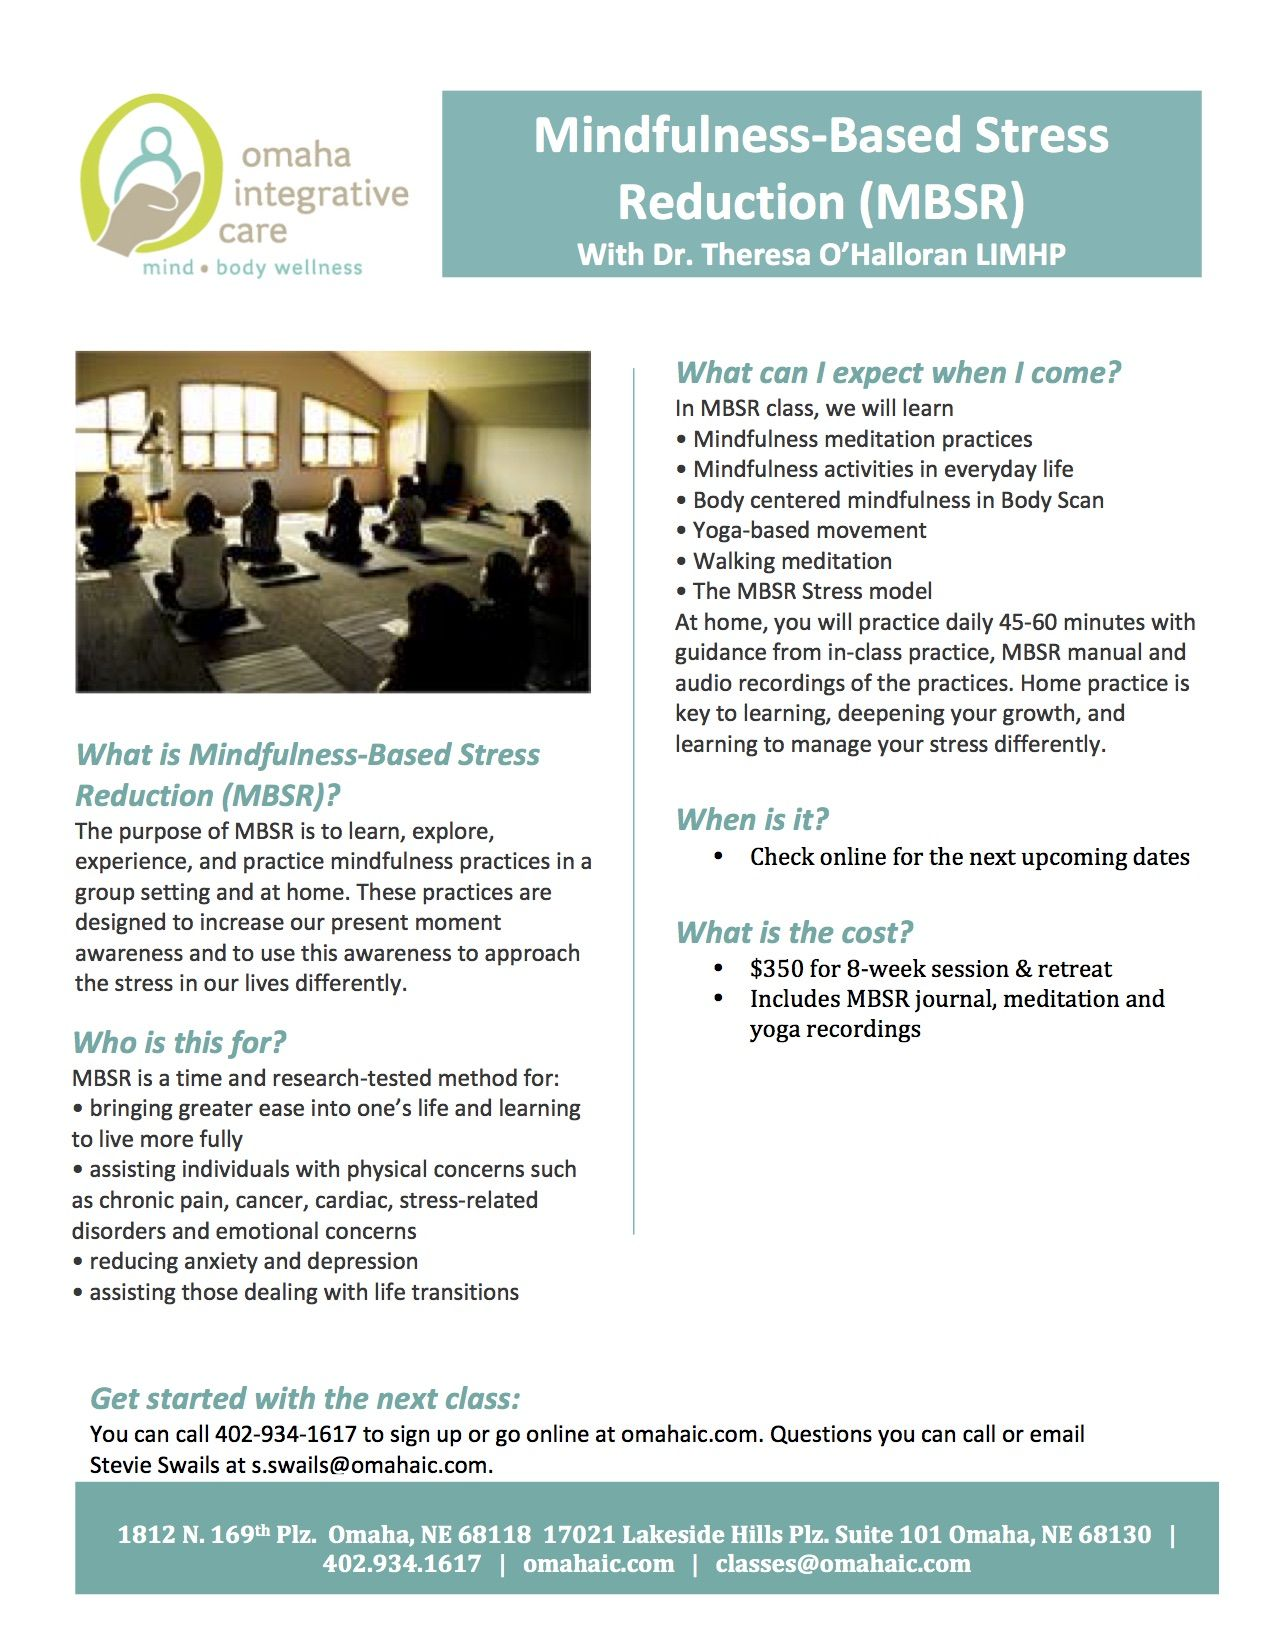 Mindfulness Based Stress Reduction Mbsr At Oic